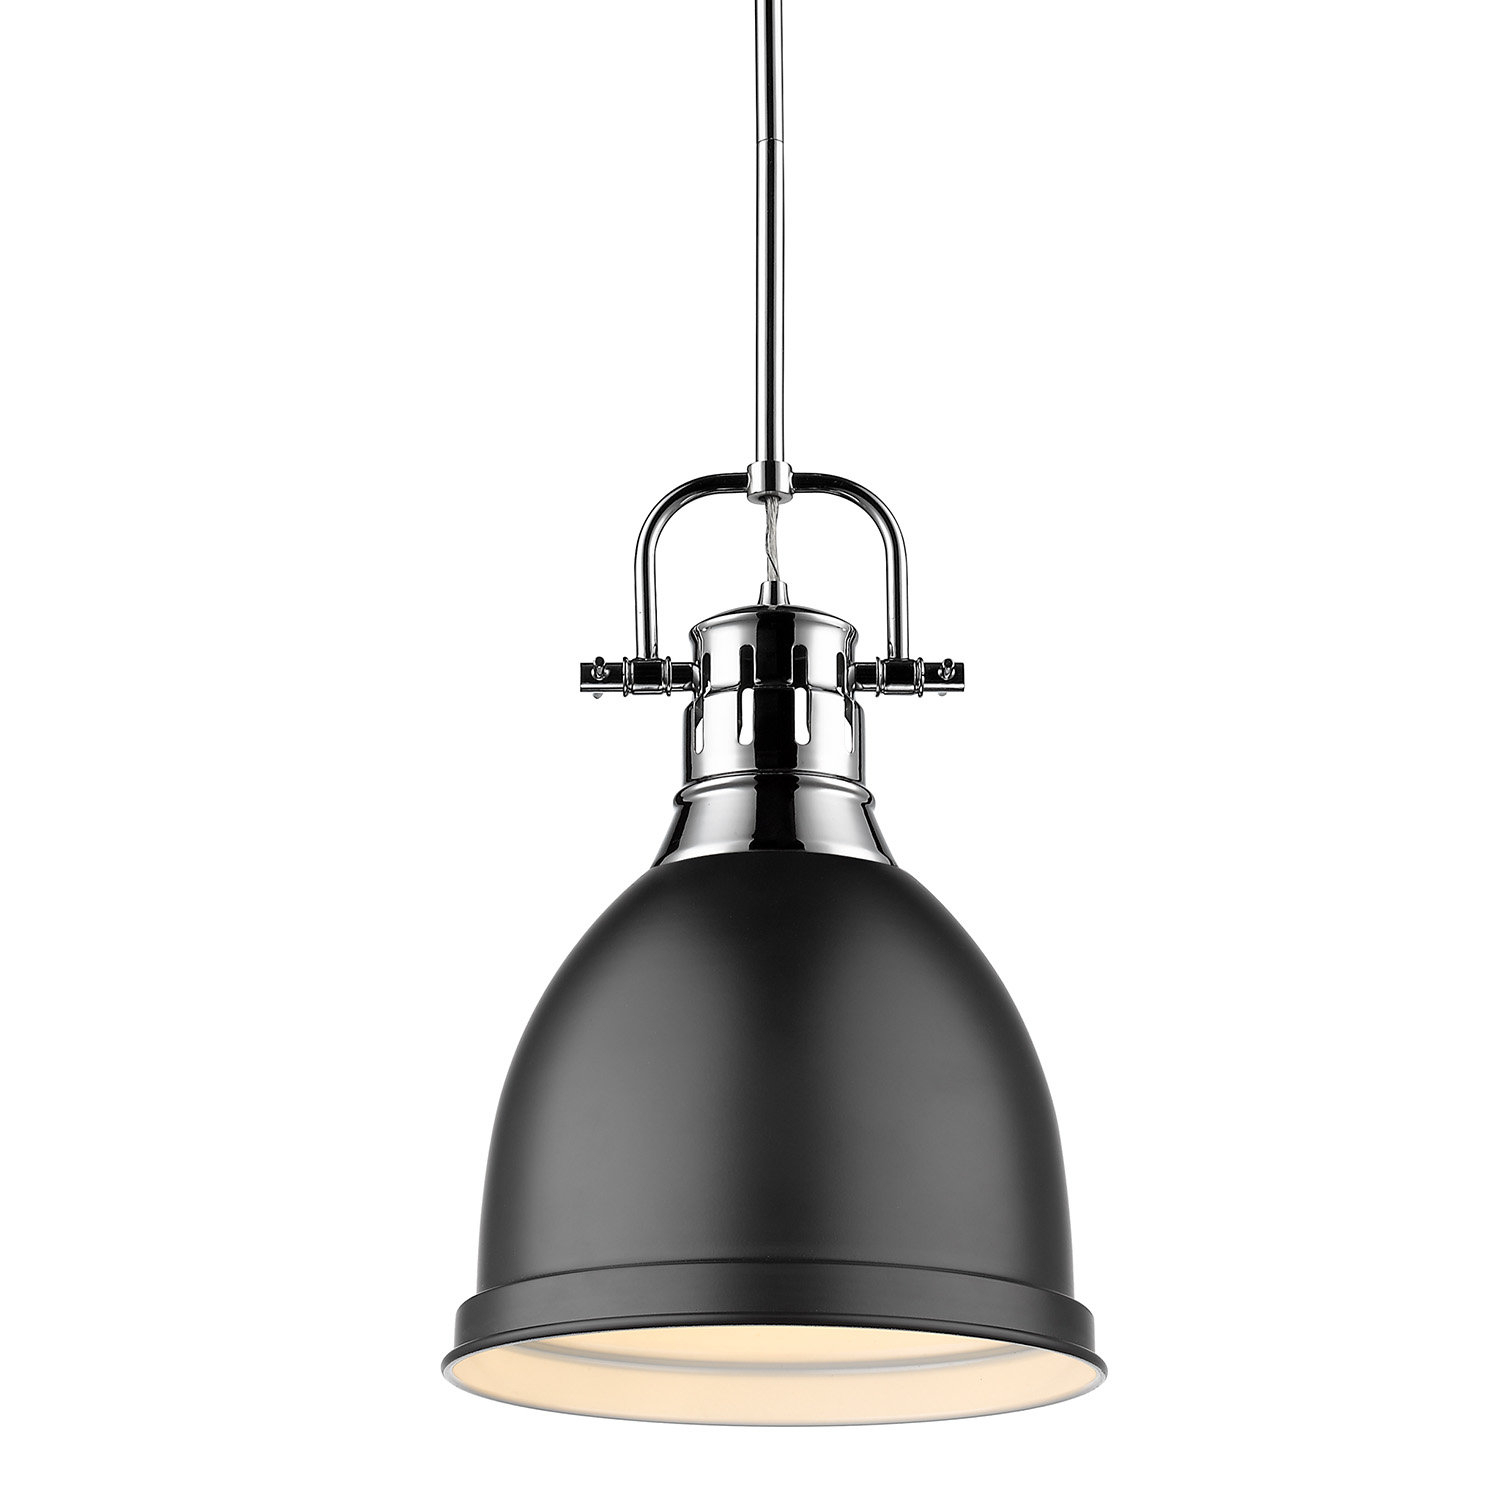 Bodalla 1 Light Single Bell Pendant Throughout Bodalla 1 Light Single Bell Pendants (View 6 of 30)